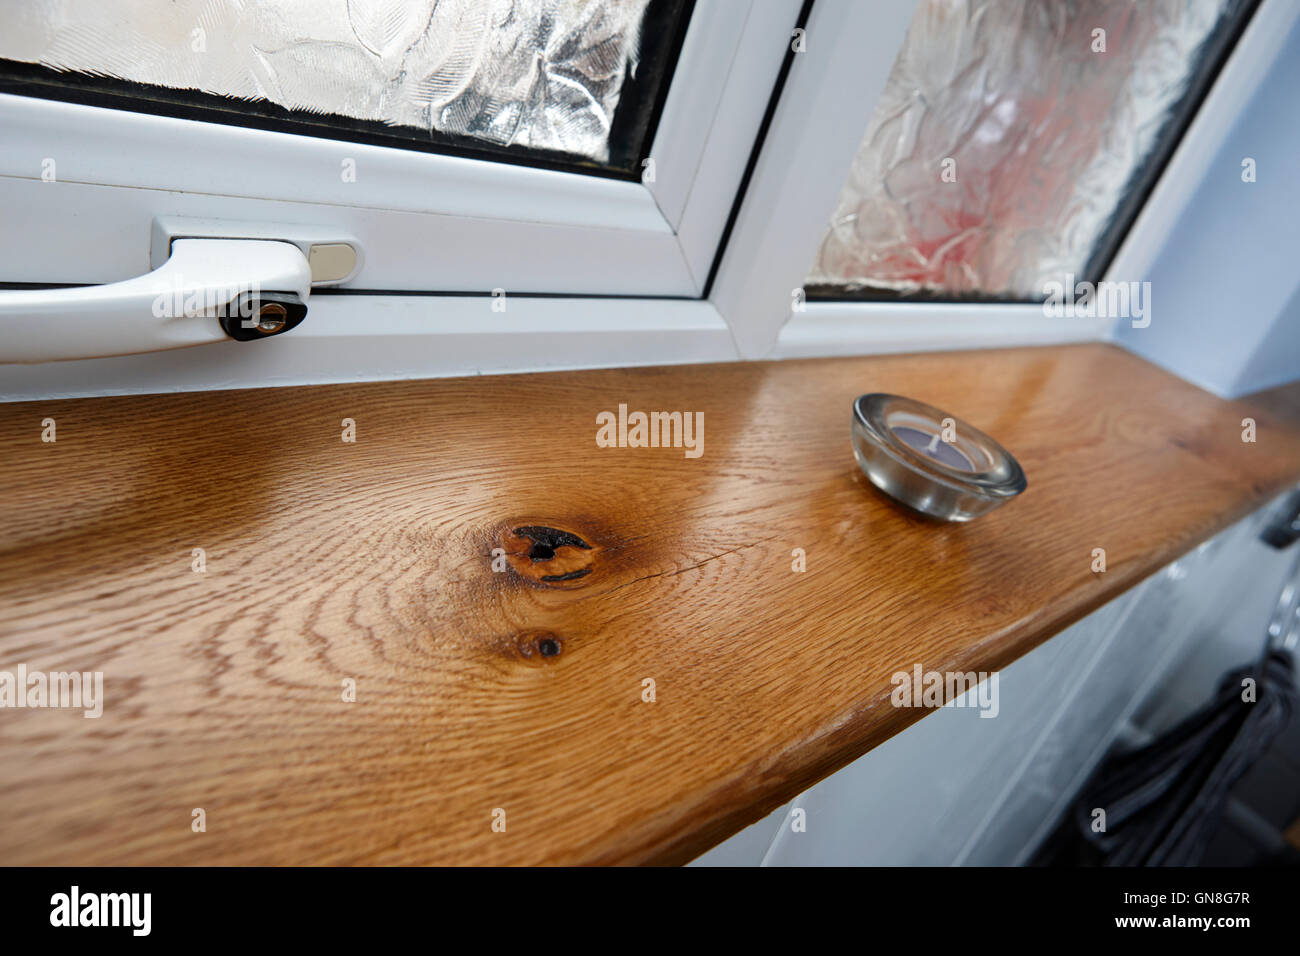 Window sills stockfotos window sills bilder alamy - Doppelt verglaste fenster ...